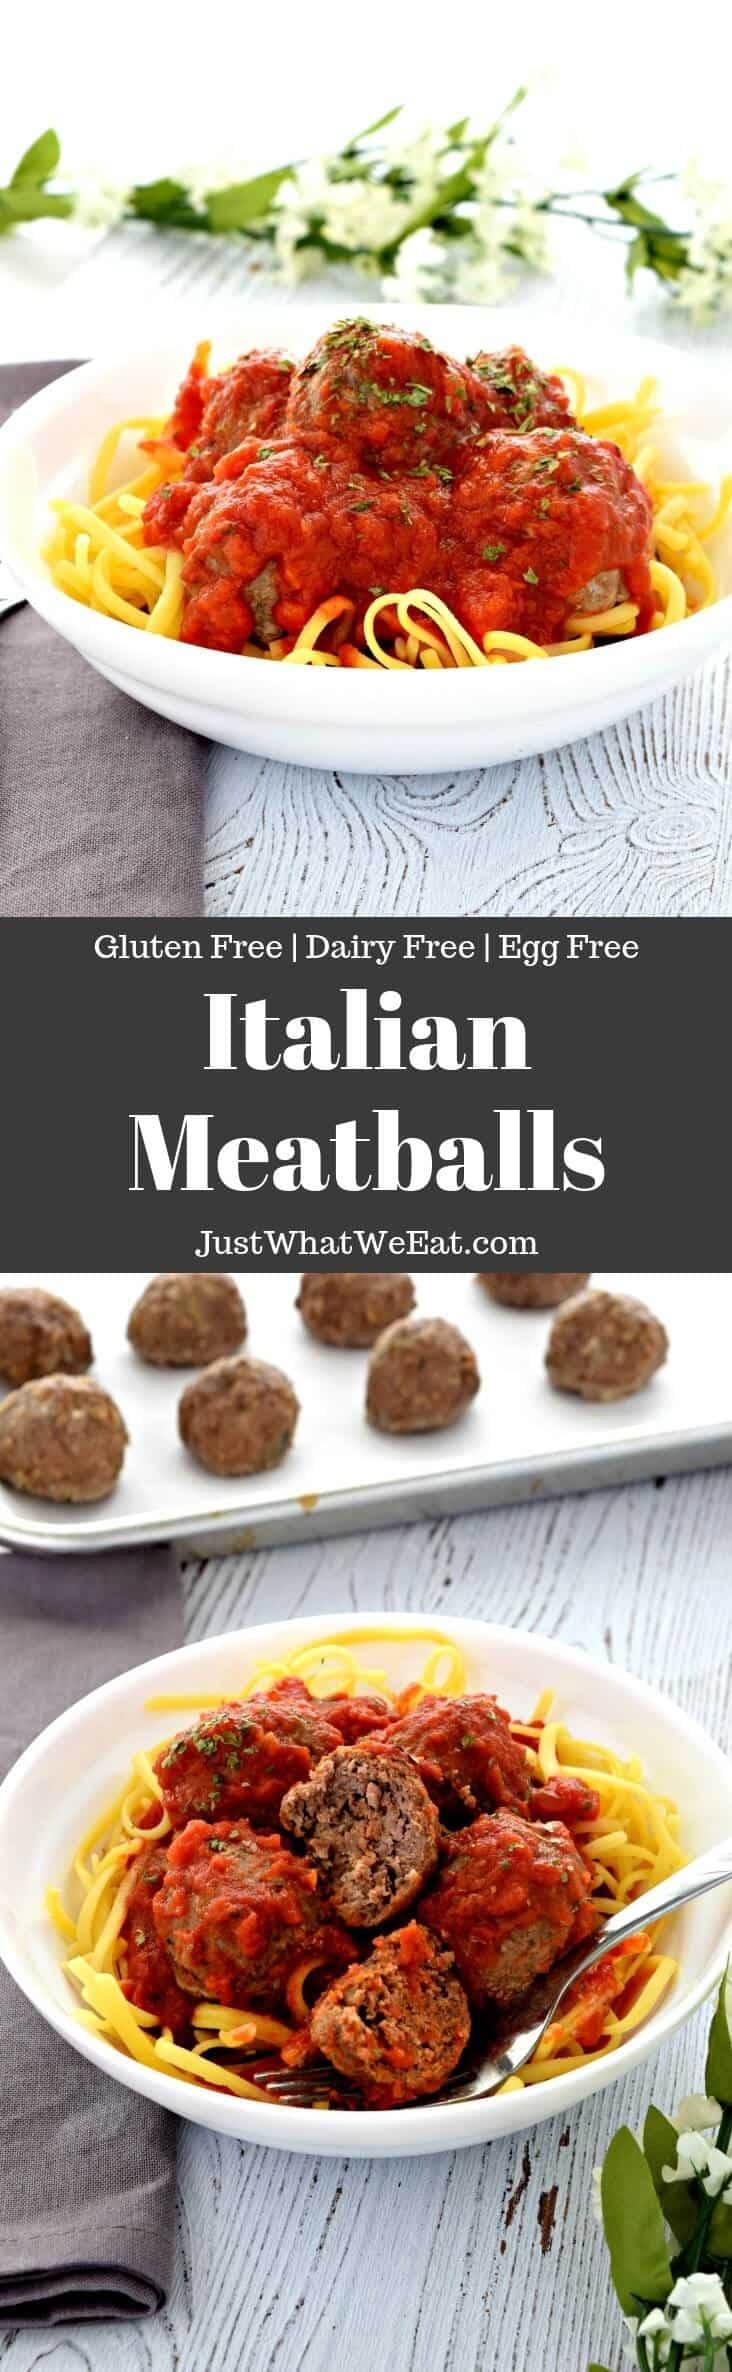 Gluten Free, Dairy Free, and Egg Free Italian Baked Meatballs